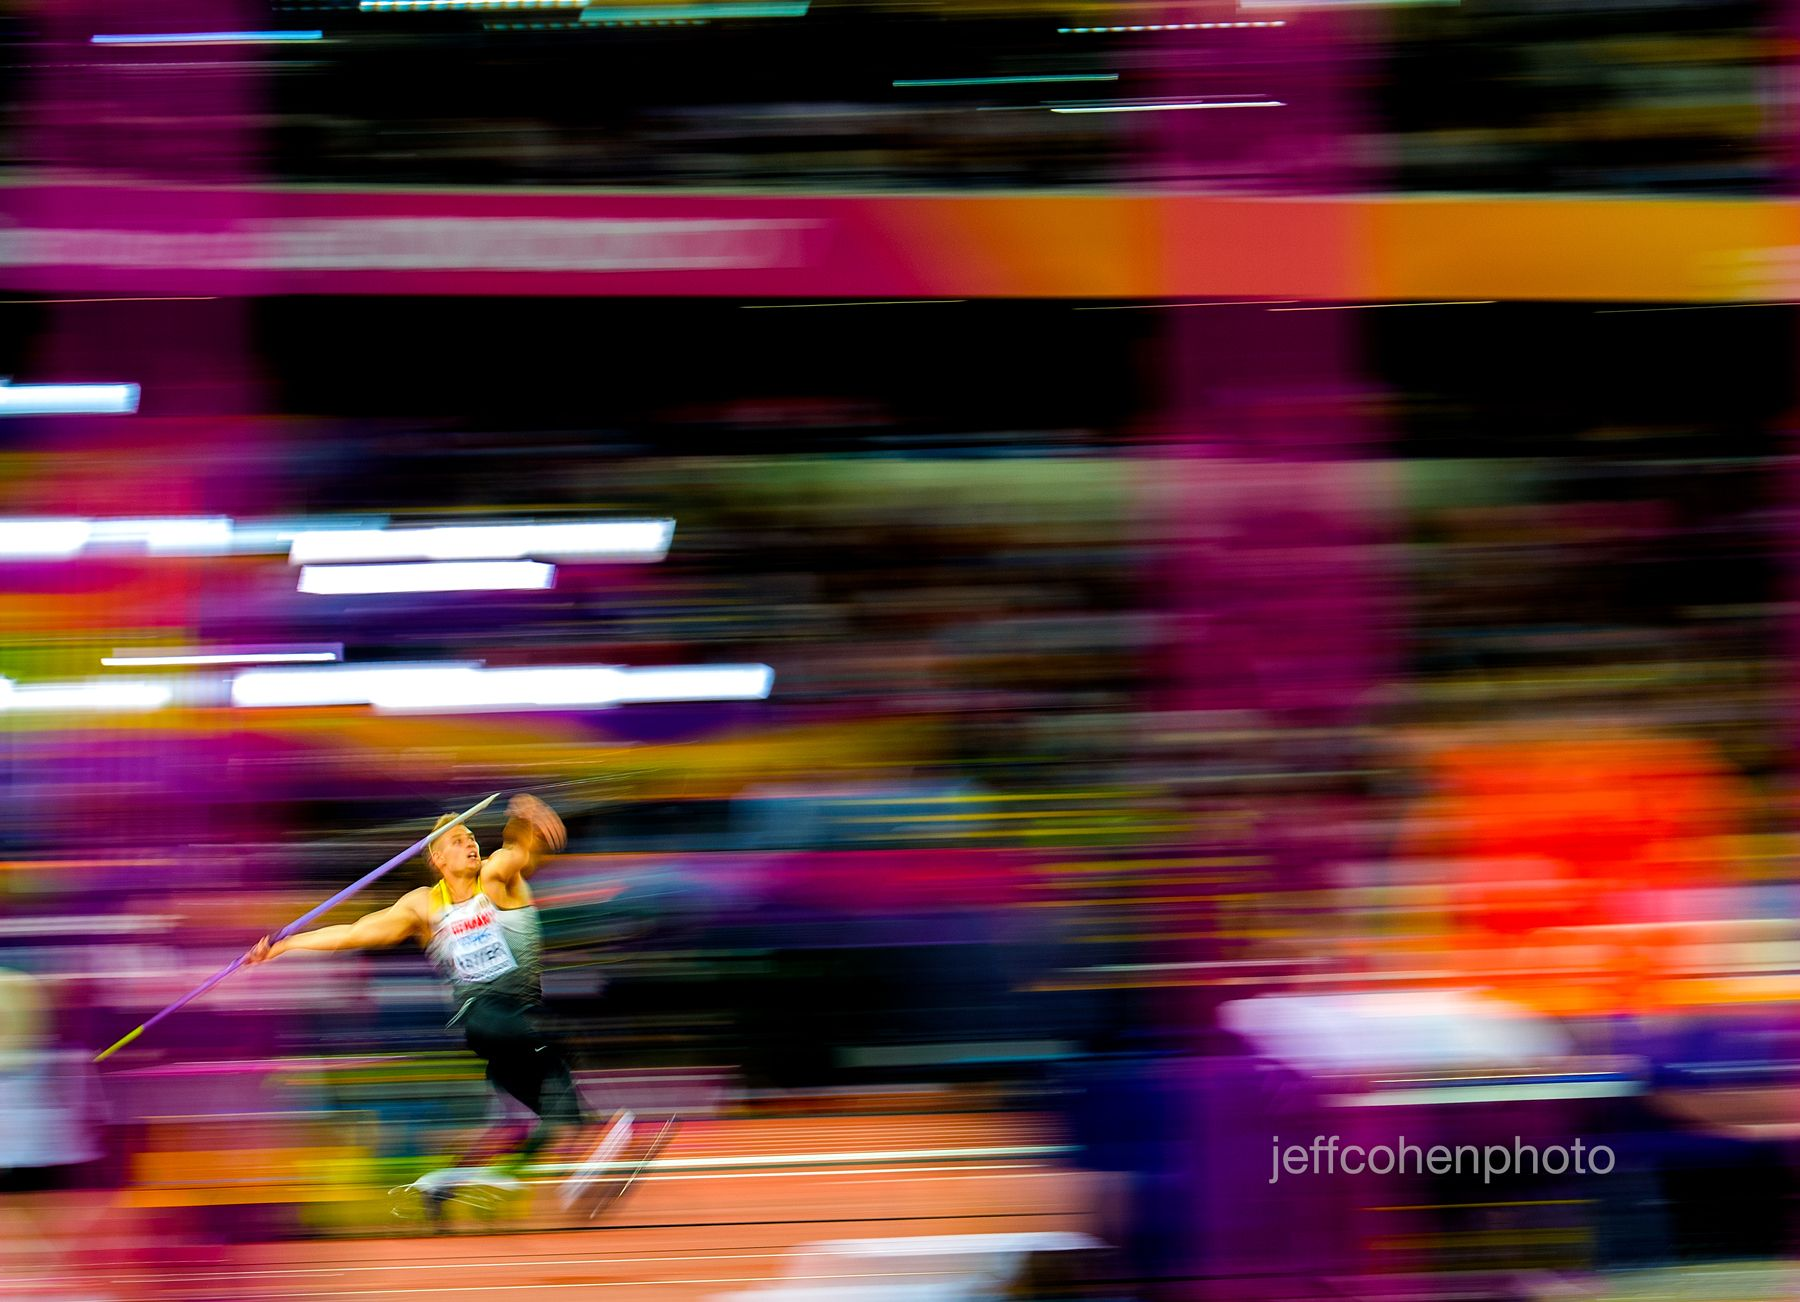 2017-IAAF-WC-London-night-9-vetter-javm--2210--jeff-cohen-photo--web.jpg